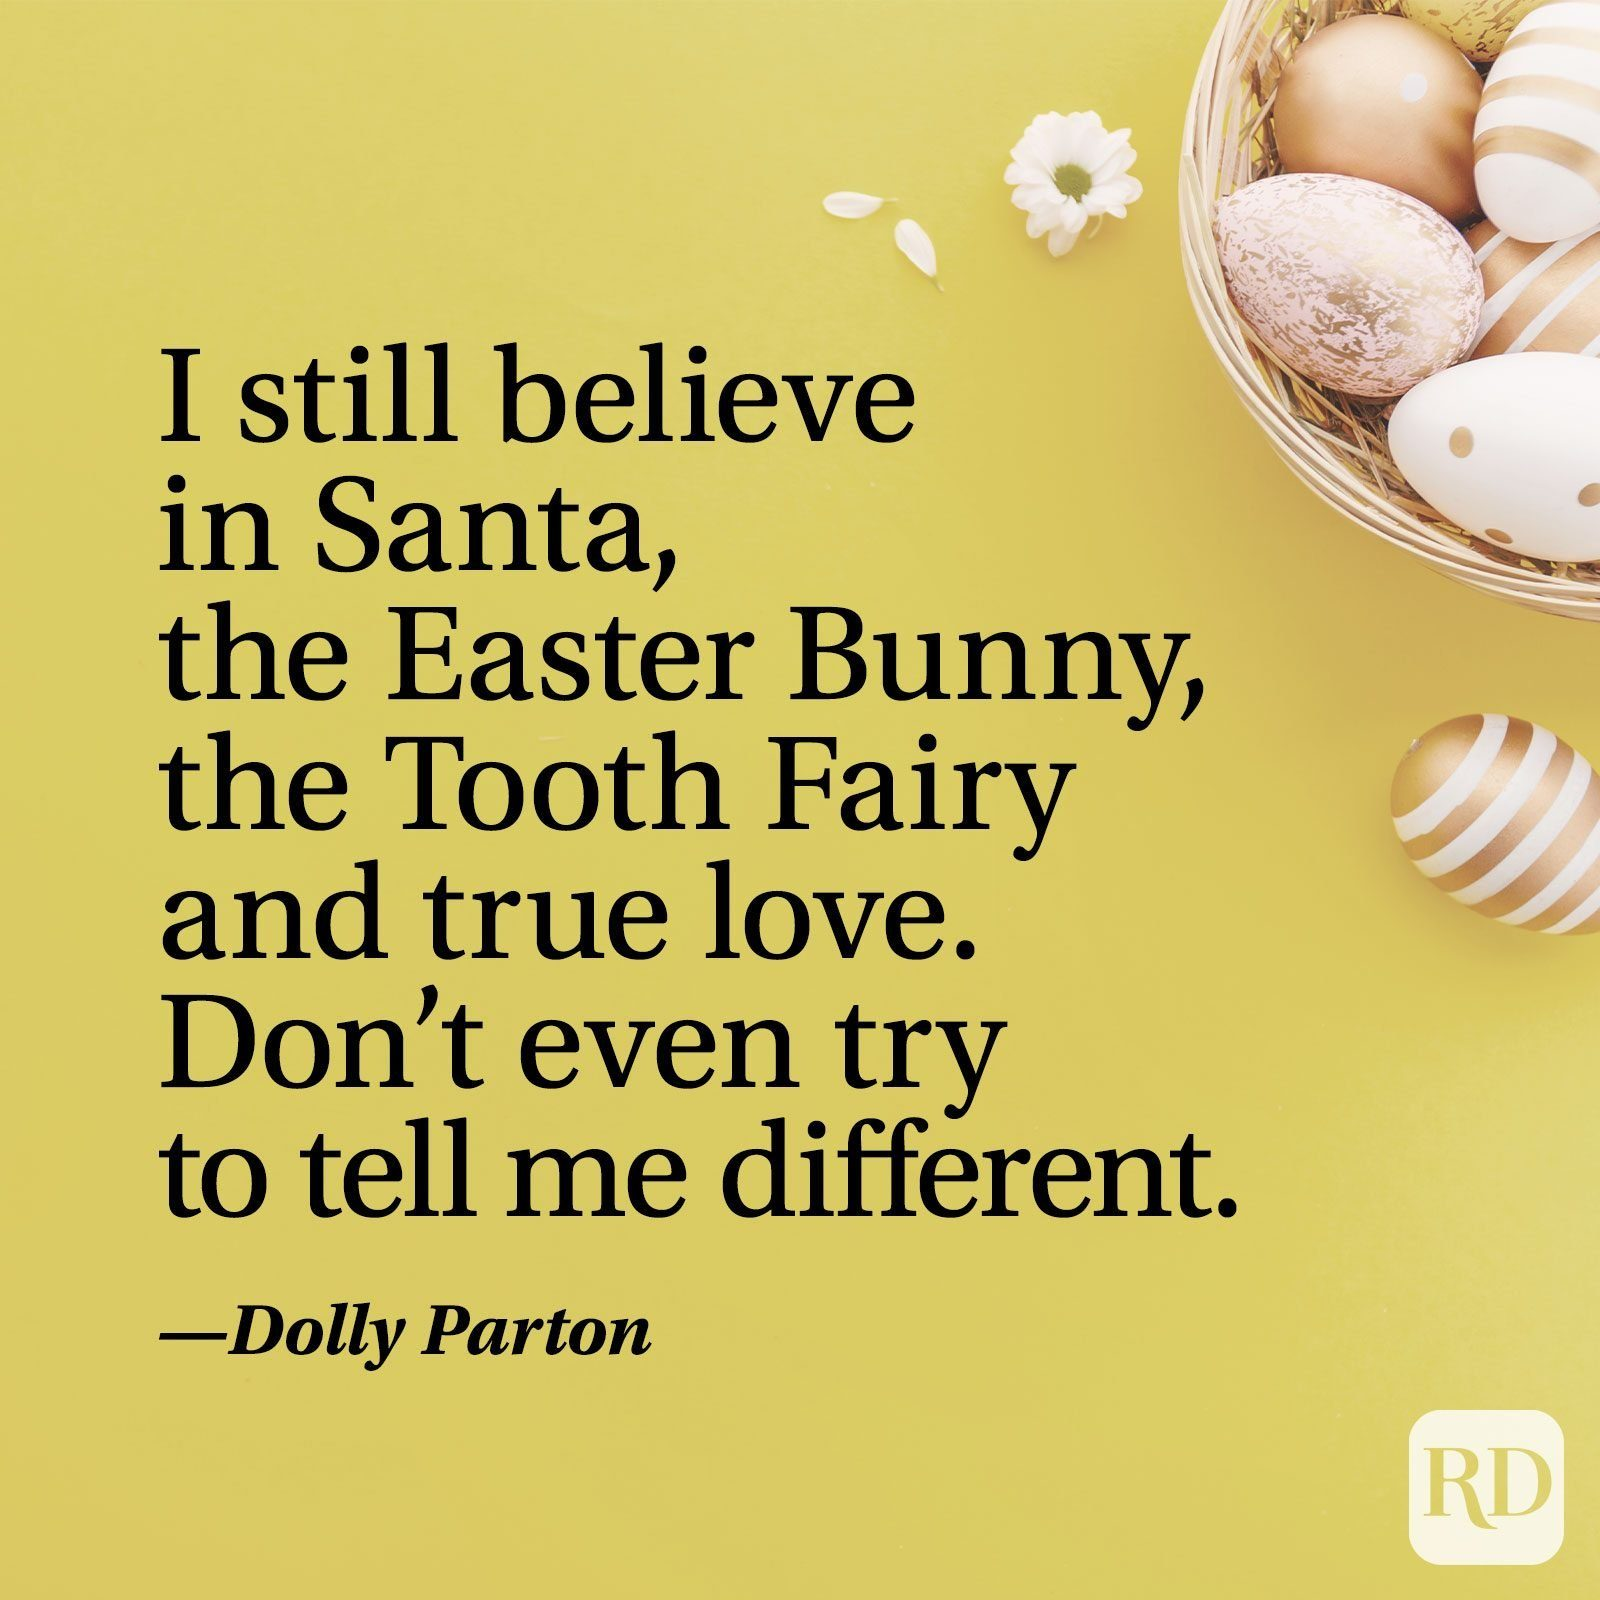 """""""I still believe in Santa, the Easter Bunny, the Tooth Fairy and true love. Don't even try to tell me different."""" — Dolly Parton"""